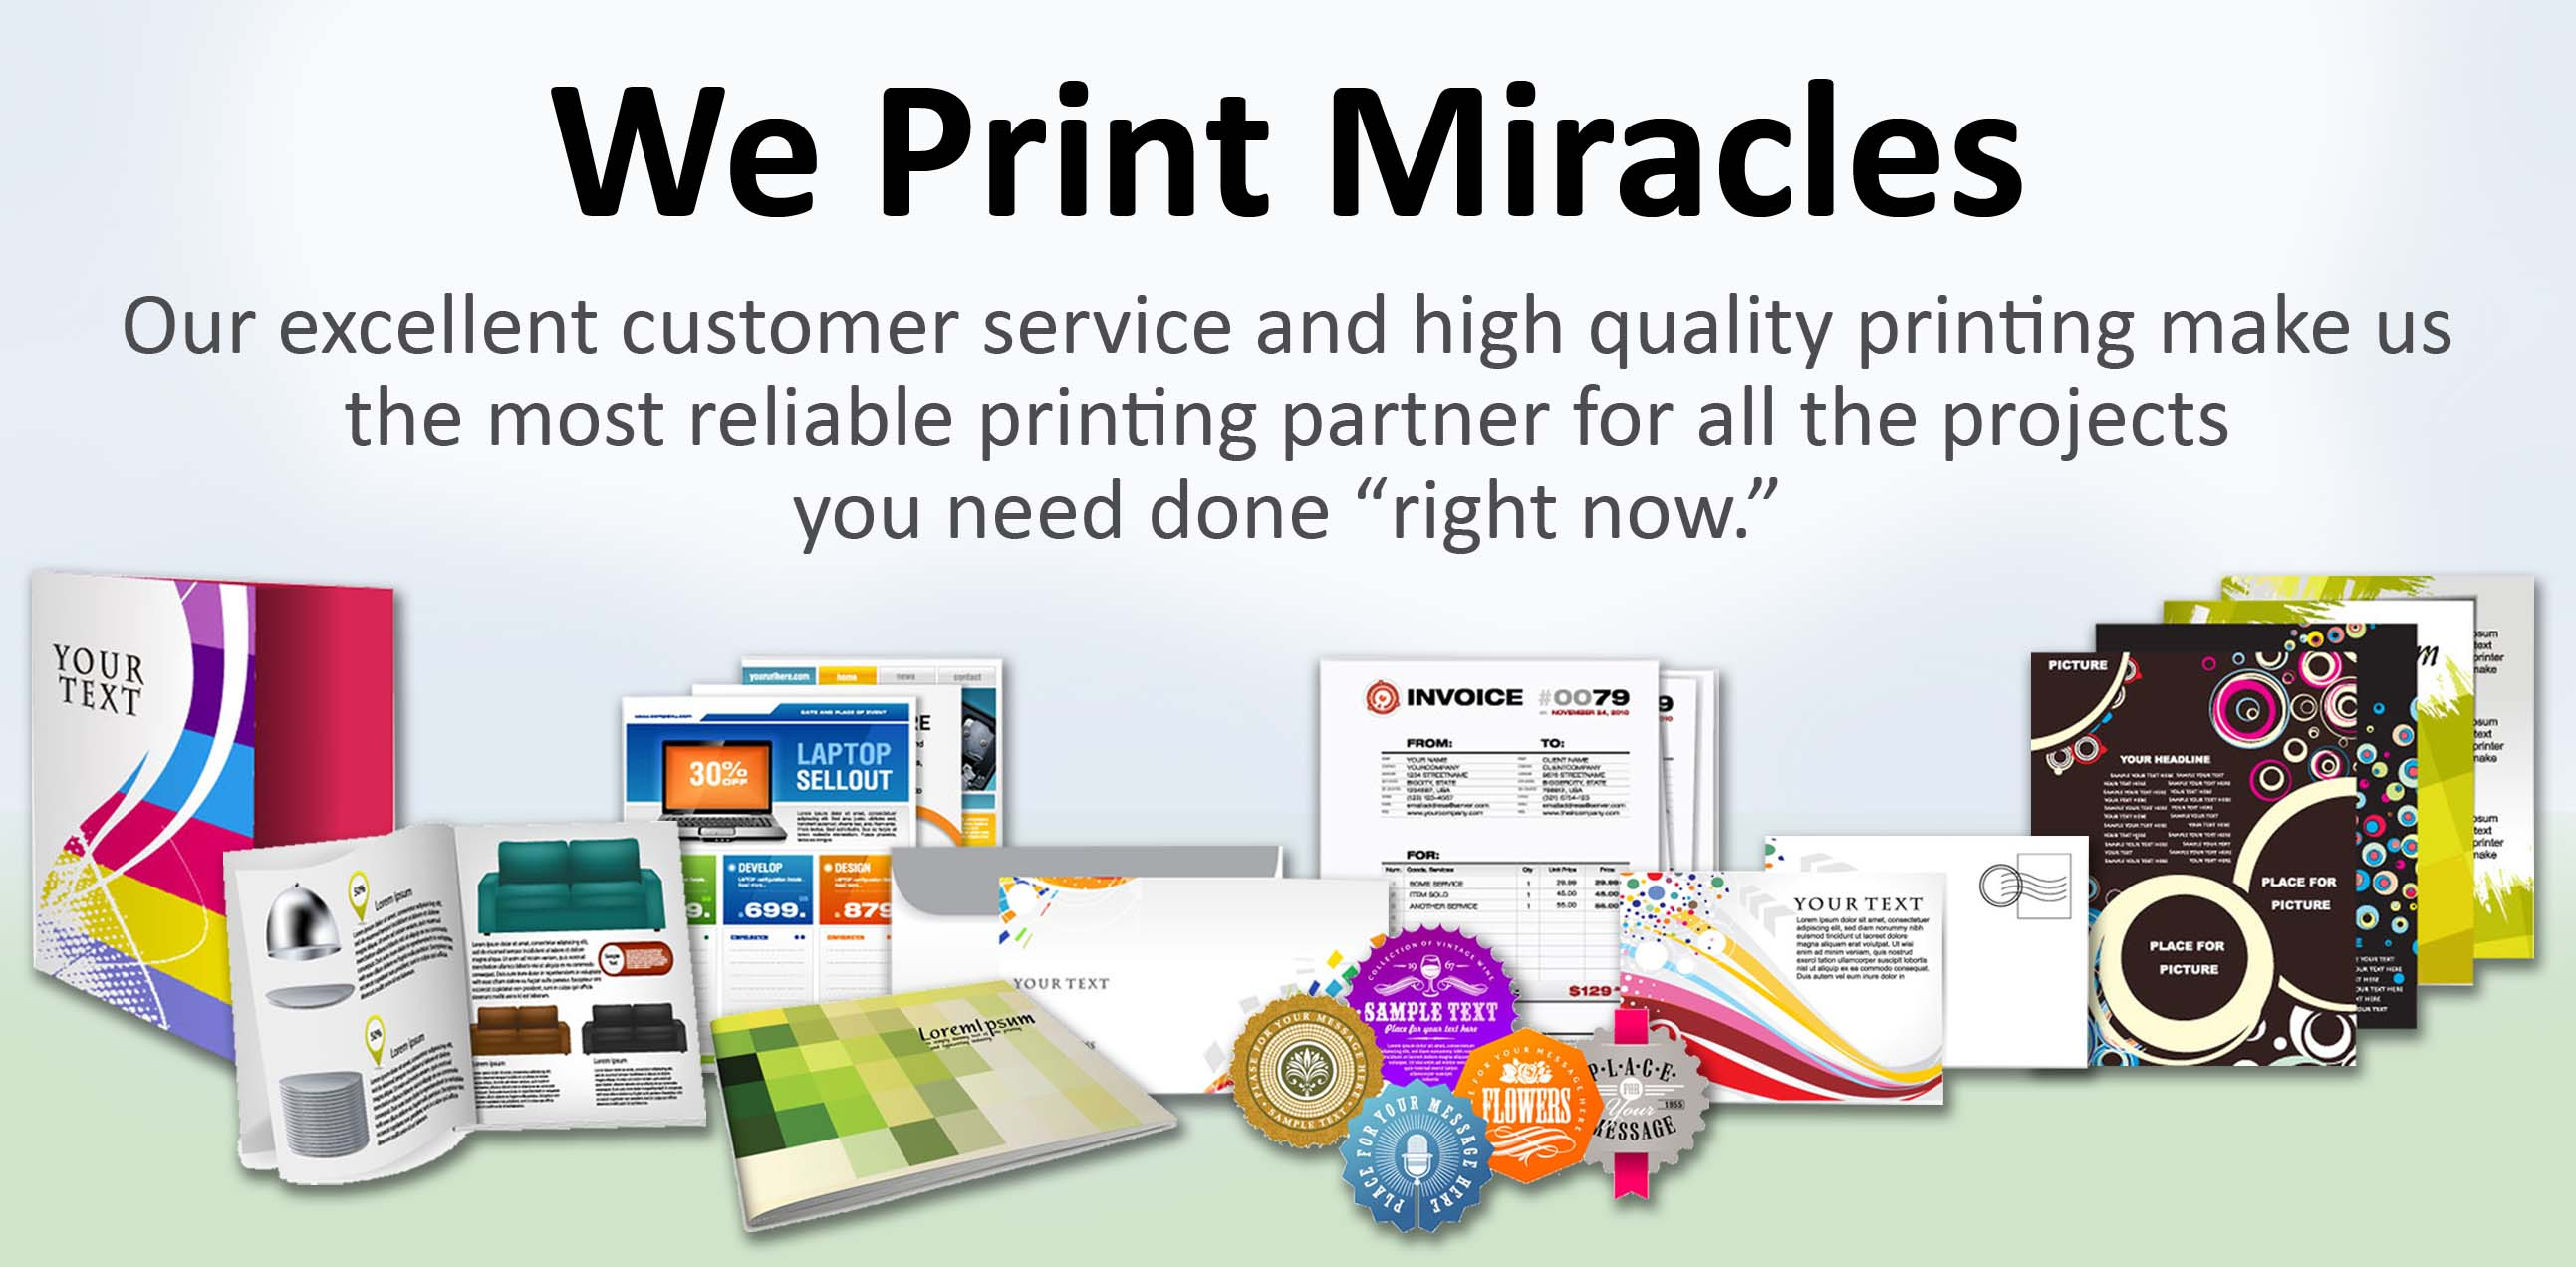 Los Angeles Printing pany Same Day Printing